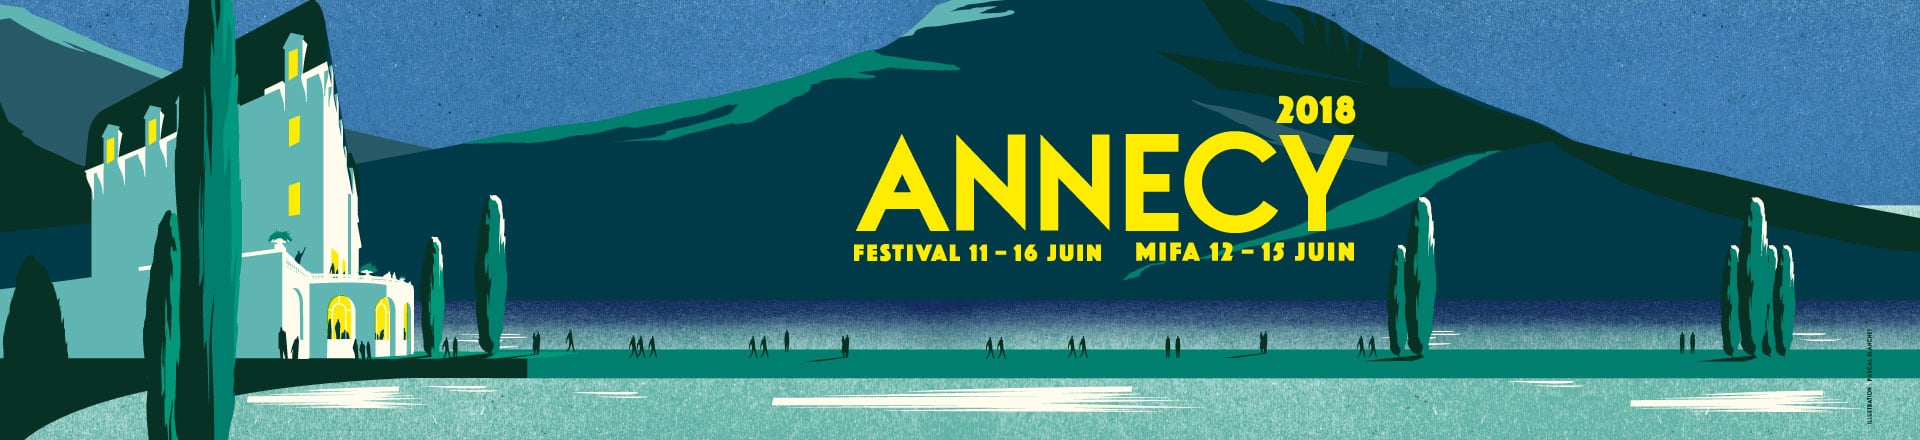 affiche_home_annecy__1920x440px_fr